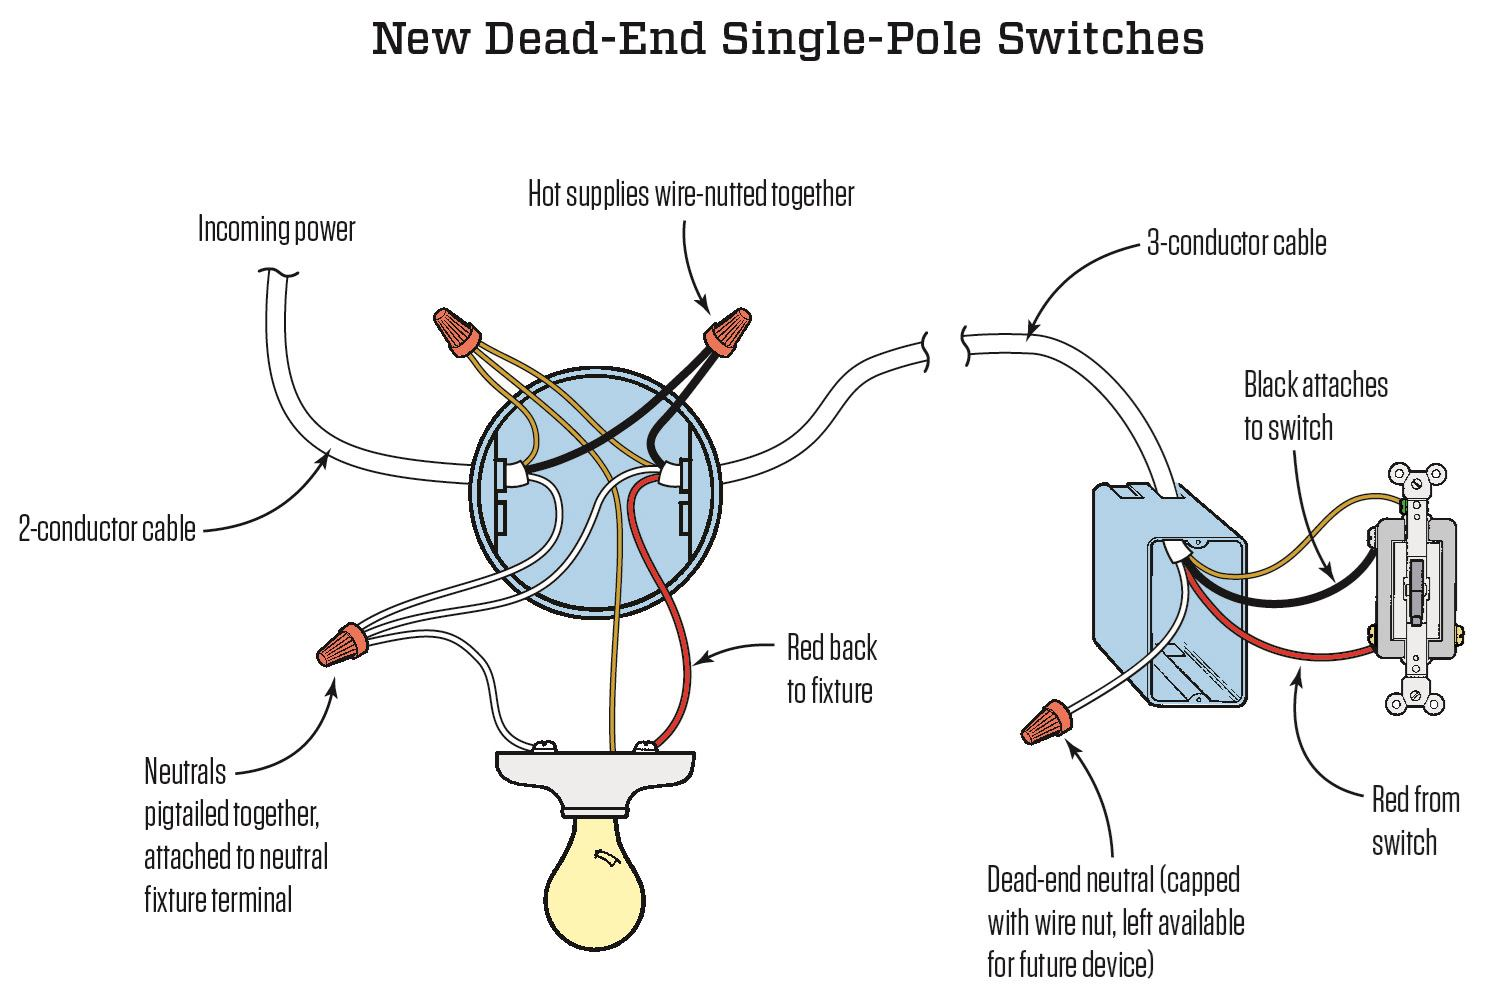 electrical wiring diagrams 110 to 220 how to electrical wiring diagrams neutral necessity: wiring three-way switches | jlc online ...